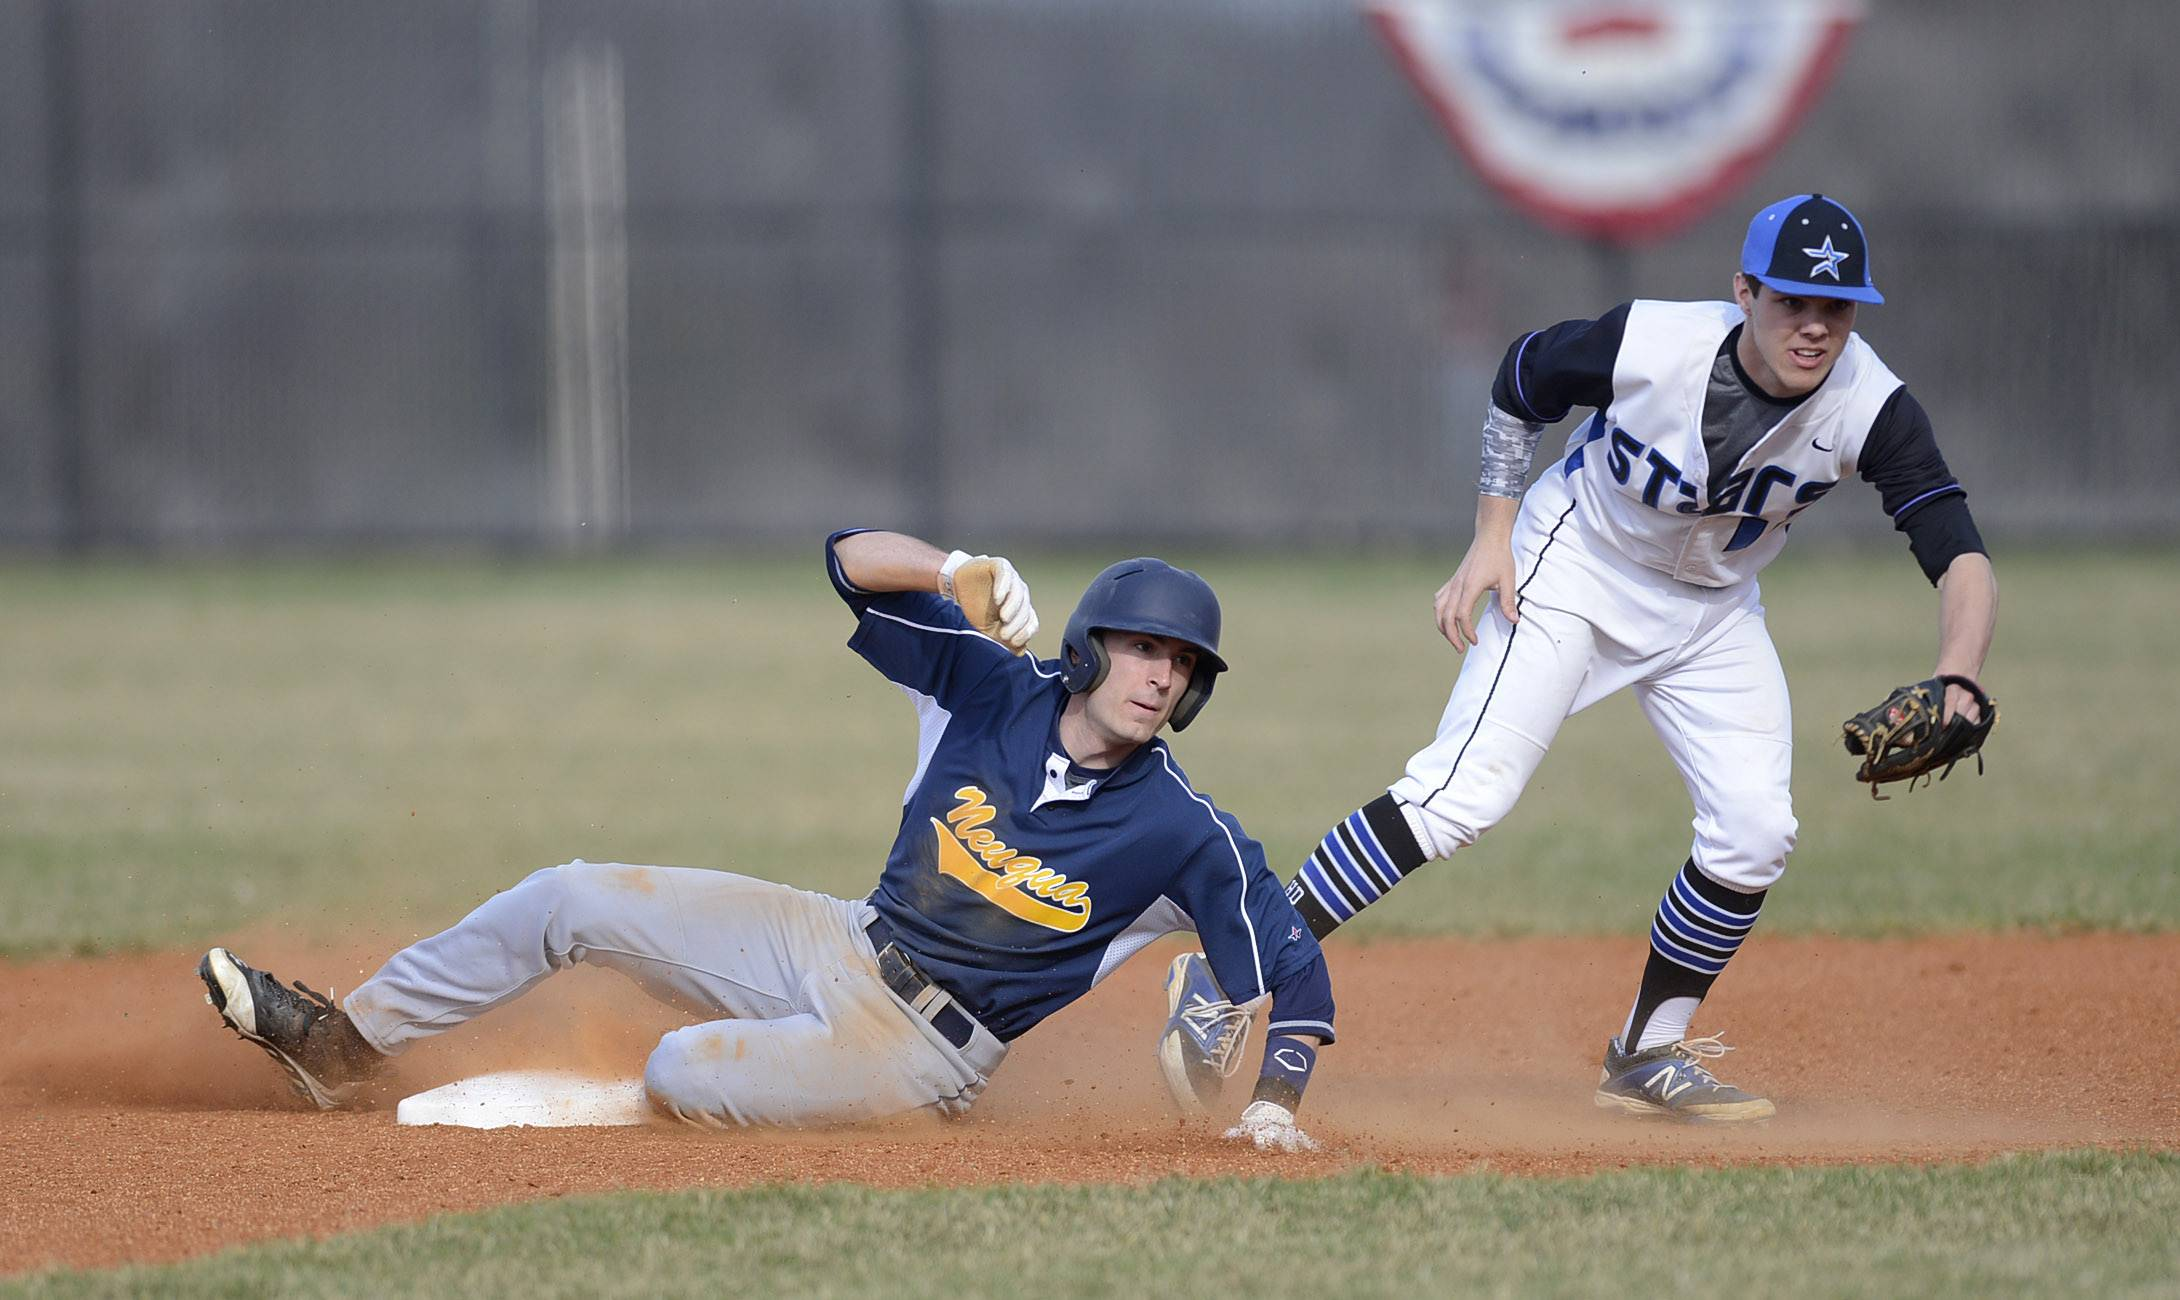 Neuqua Valley's Josh Piotrowski is out at second base by St. Charles North's Zach Mettetal in the first inning on Friday, April 11.